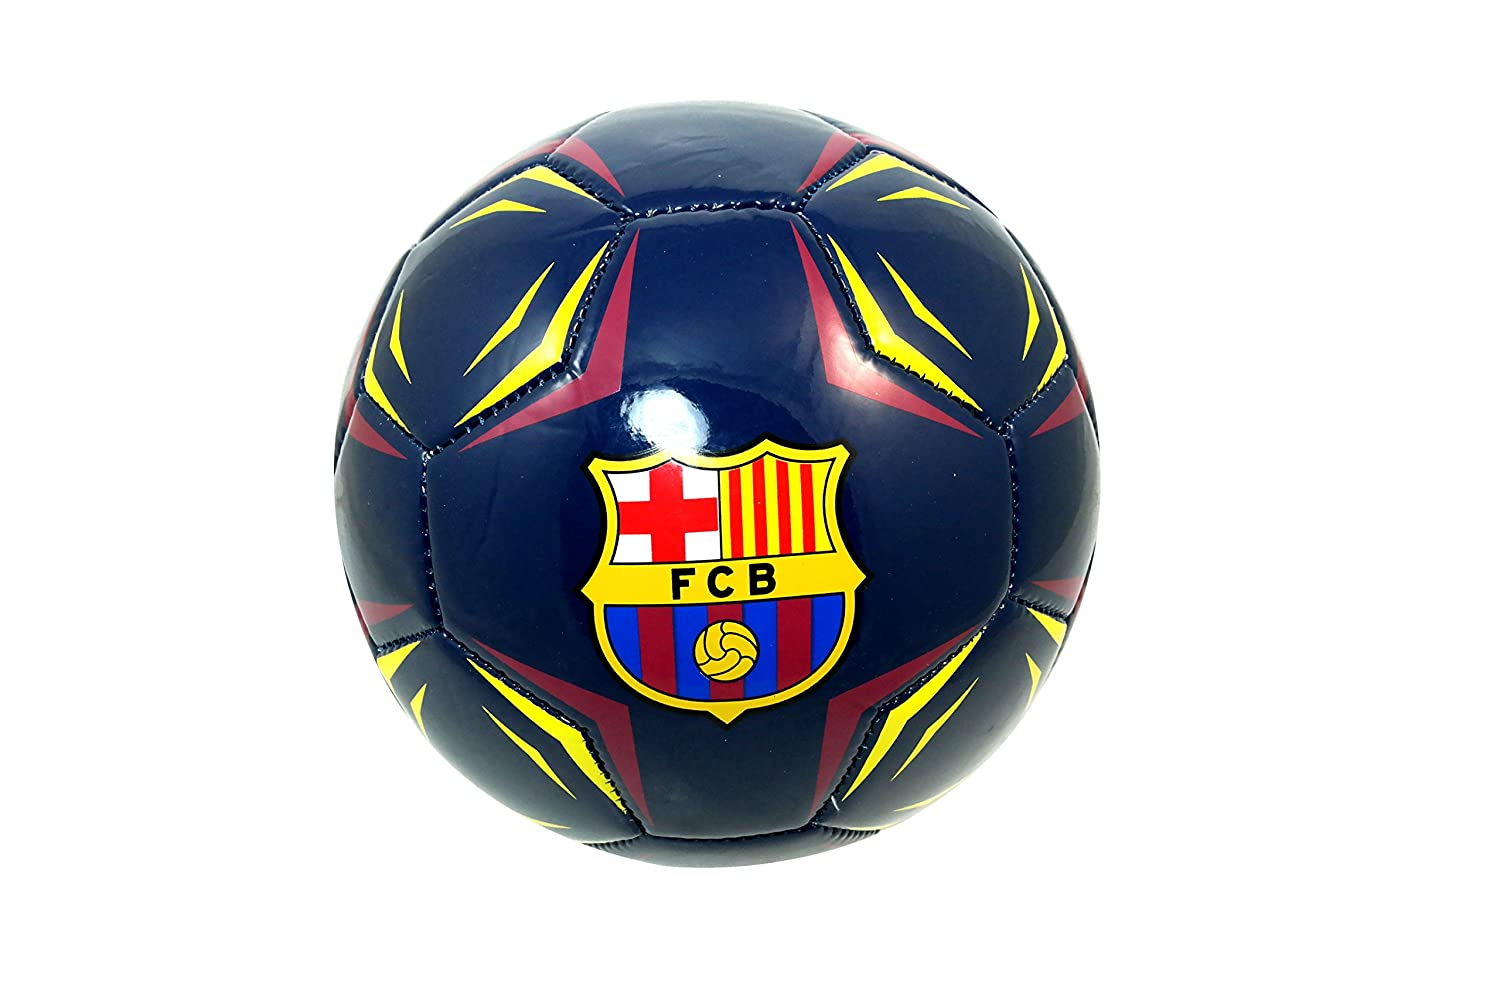 FC Barcelona Authentic Official Licenced Soccer Ball Size 3 -002   B00WAL9NF0